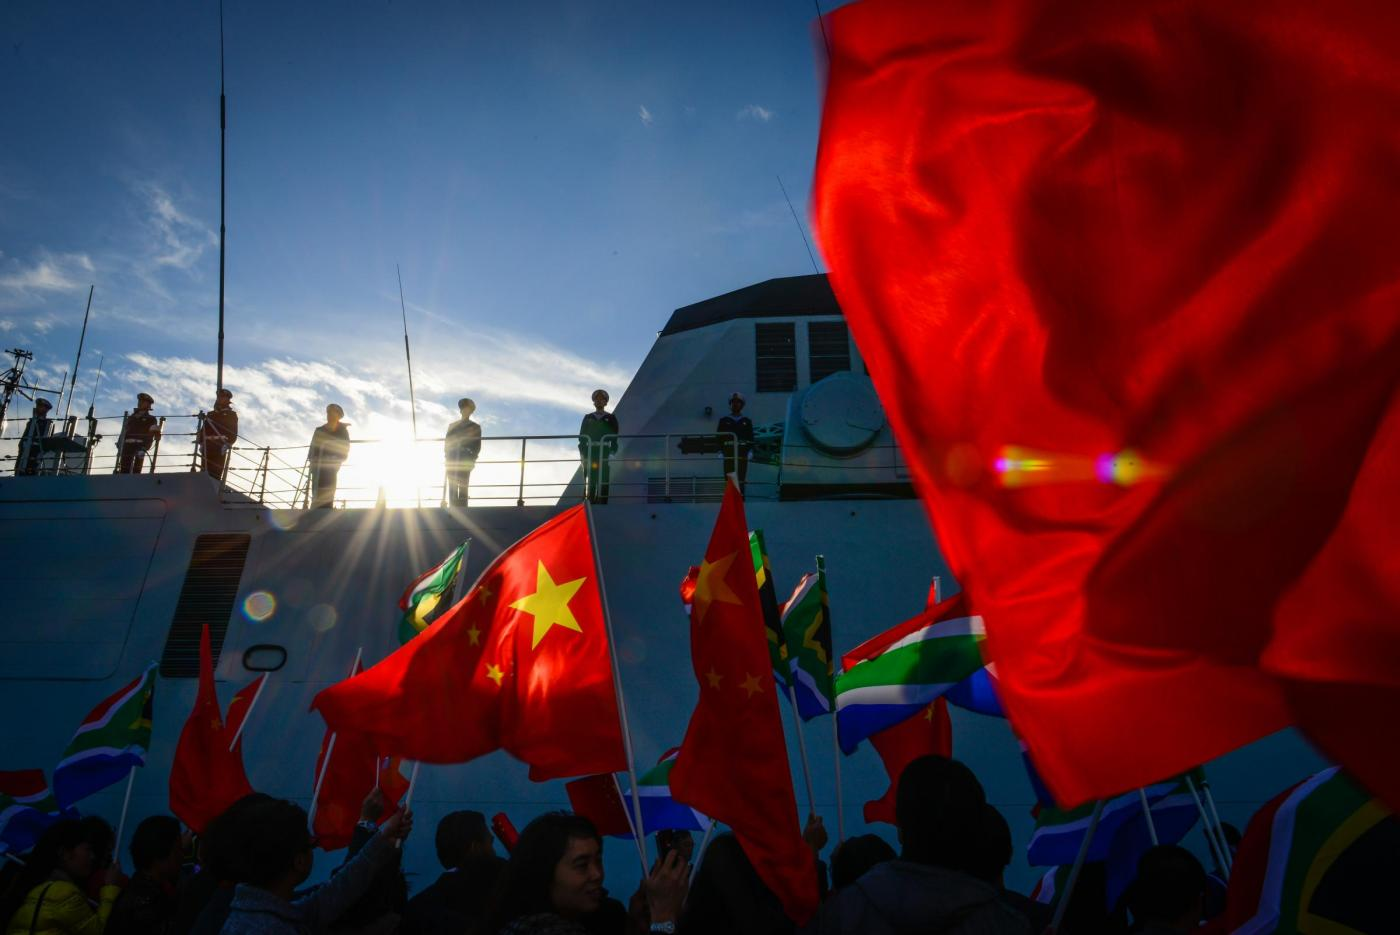 (160516) -- SIMON'S TOWN (SOUTH AFRICA), May 16, 2016 (Xinhua) -- Local Chinese wave flags to welcome the visiting Chinese naval ships at Simon's Town, South Africa, May 16, 2016. The 22nd Chinese naval escort taskforce arrived Monday at the Simon's Town naval base of South Africa for a four-day friendly visit. During the visit, the Chinese navy will conduct friendly exchanges with the South Africa Navy, including mutual visits and open day for public visit. After the port call, the taskforce will conduct joint exercise with the South Africa Navy in South Africa's coastal waters. (Xinhua/Zhai Jianlan)